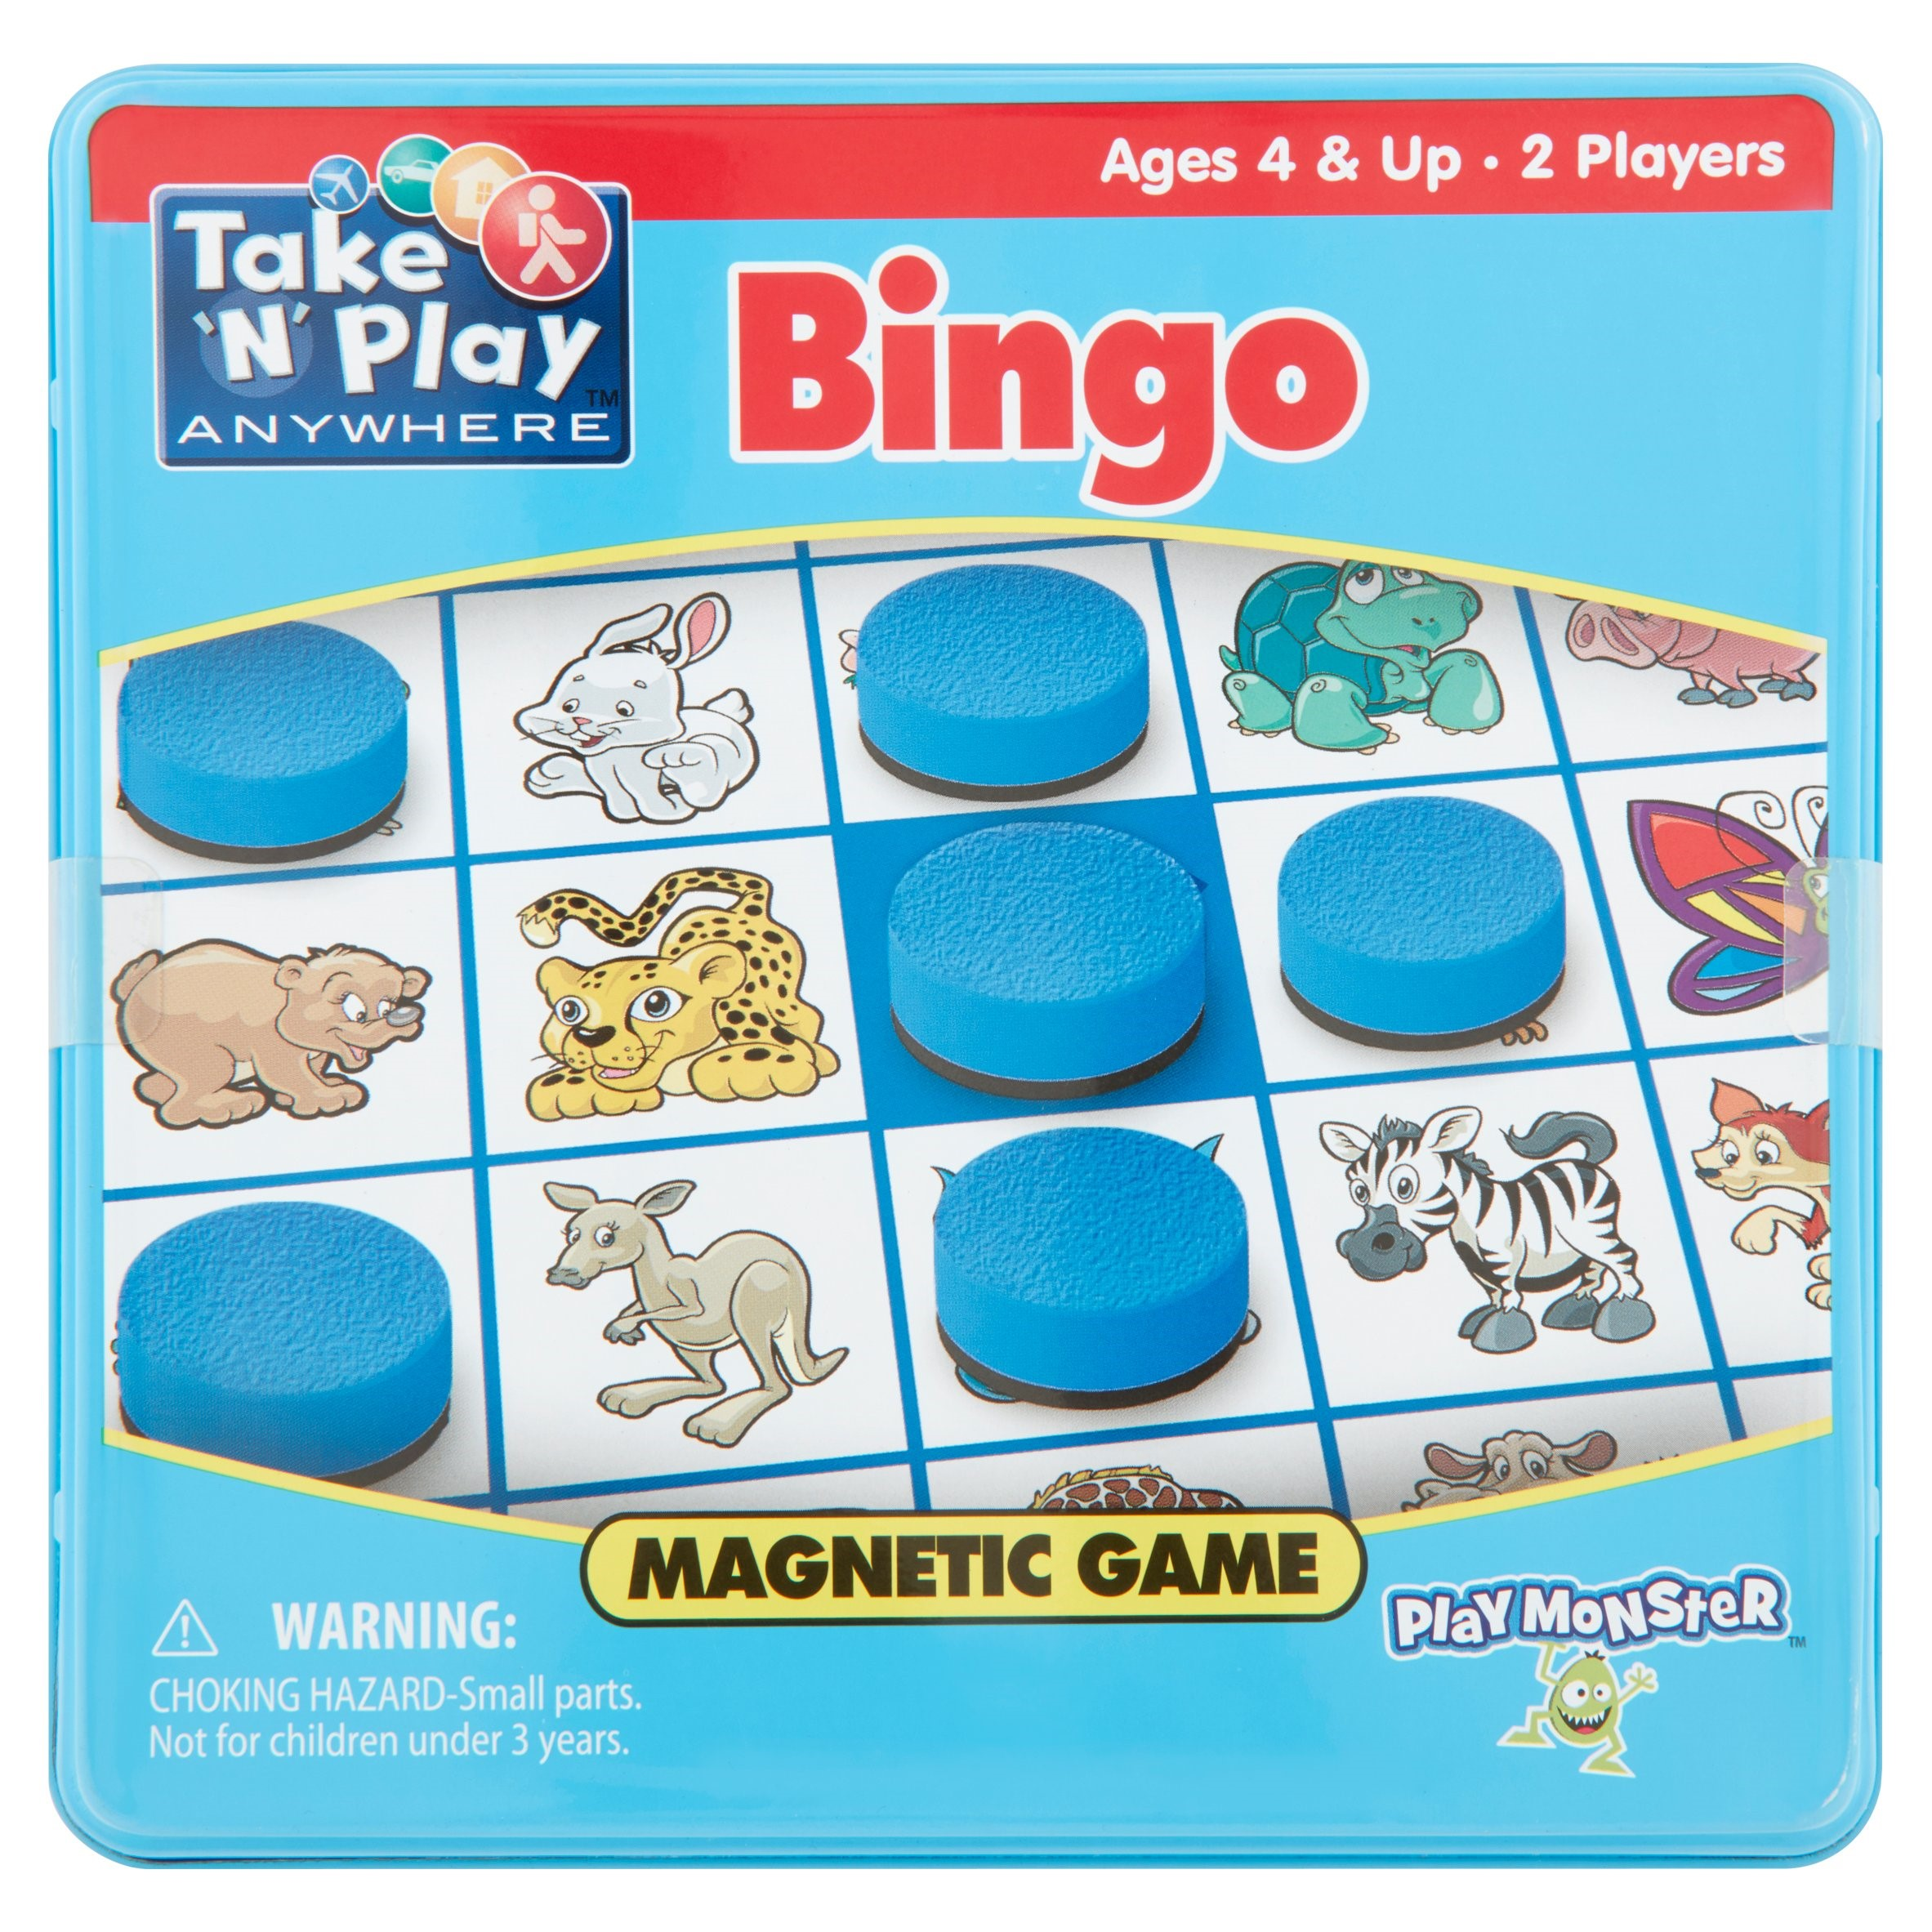 Play Monster Take 'N' Play Bingo Anywhere Magnetic Game Ages 4 & Up